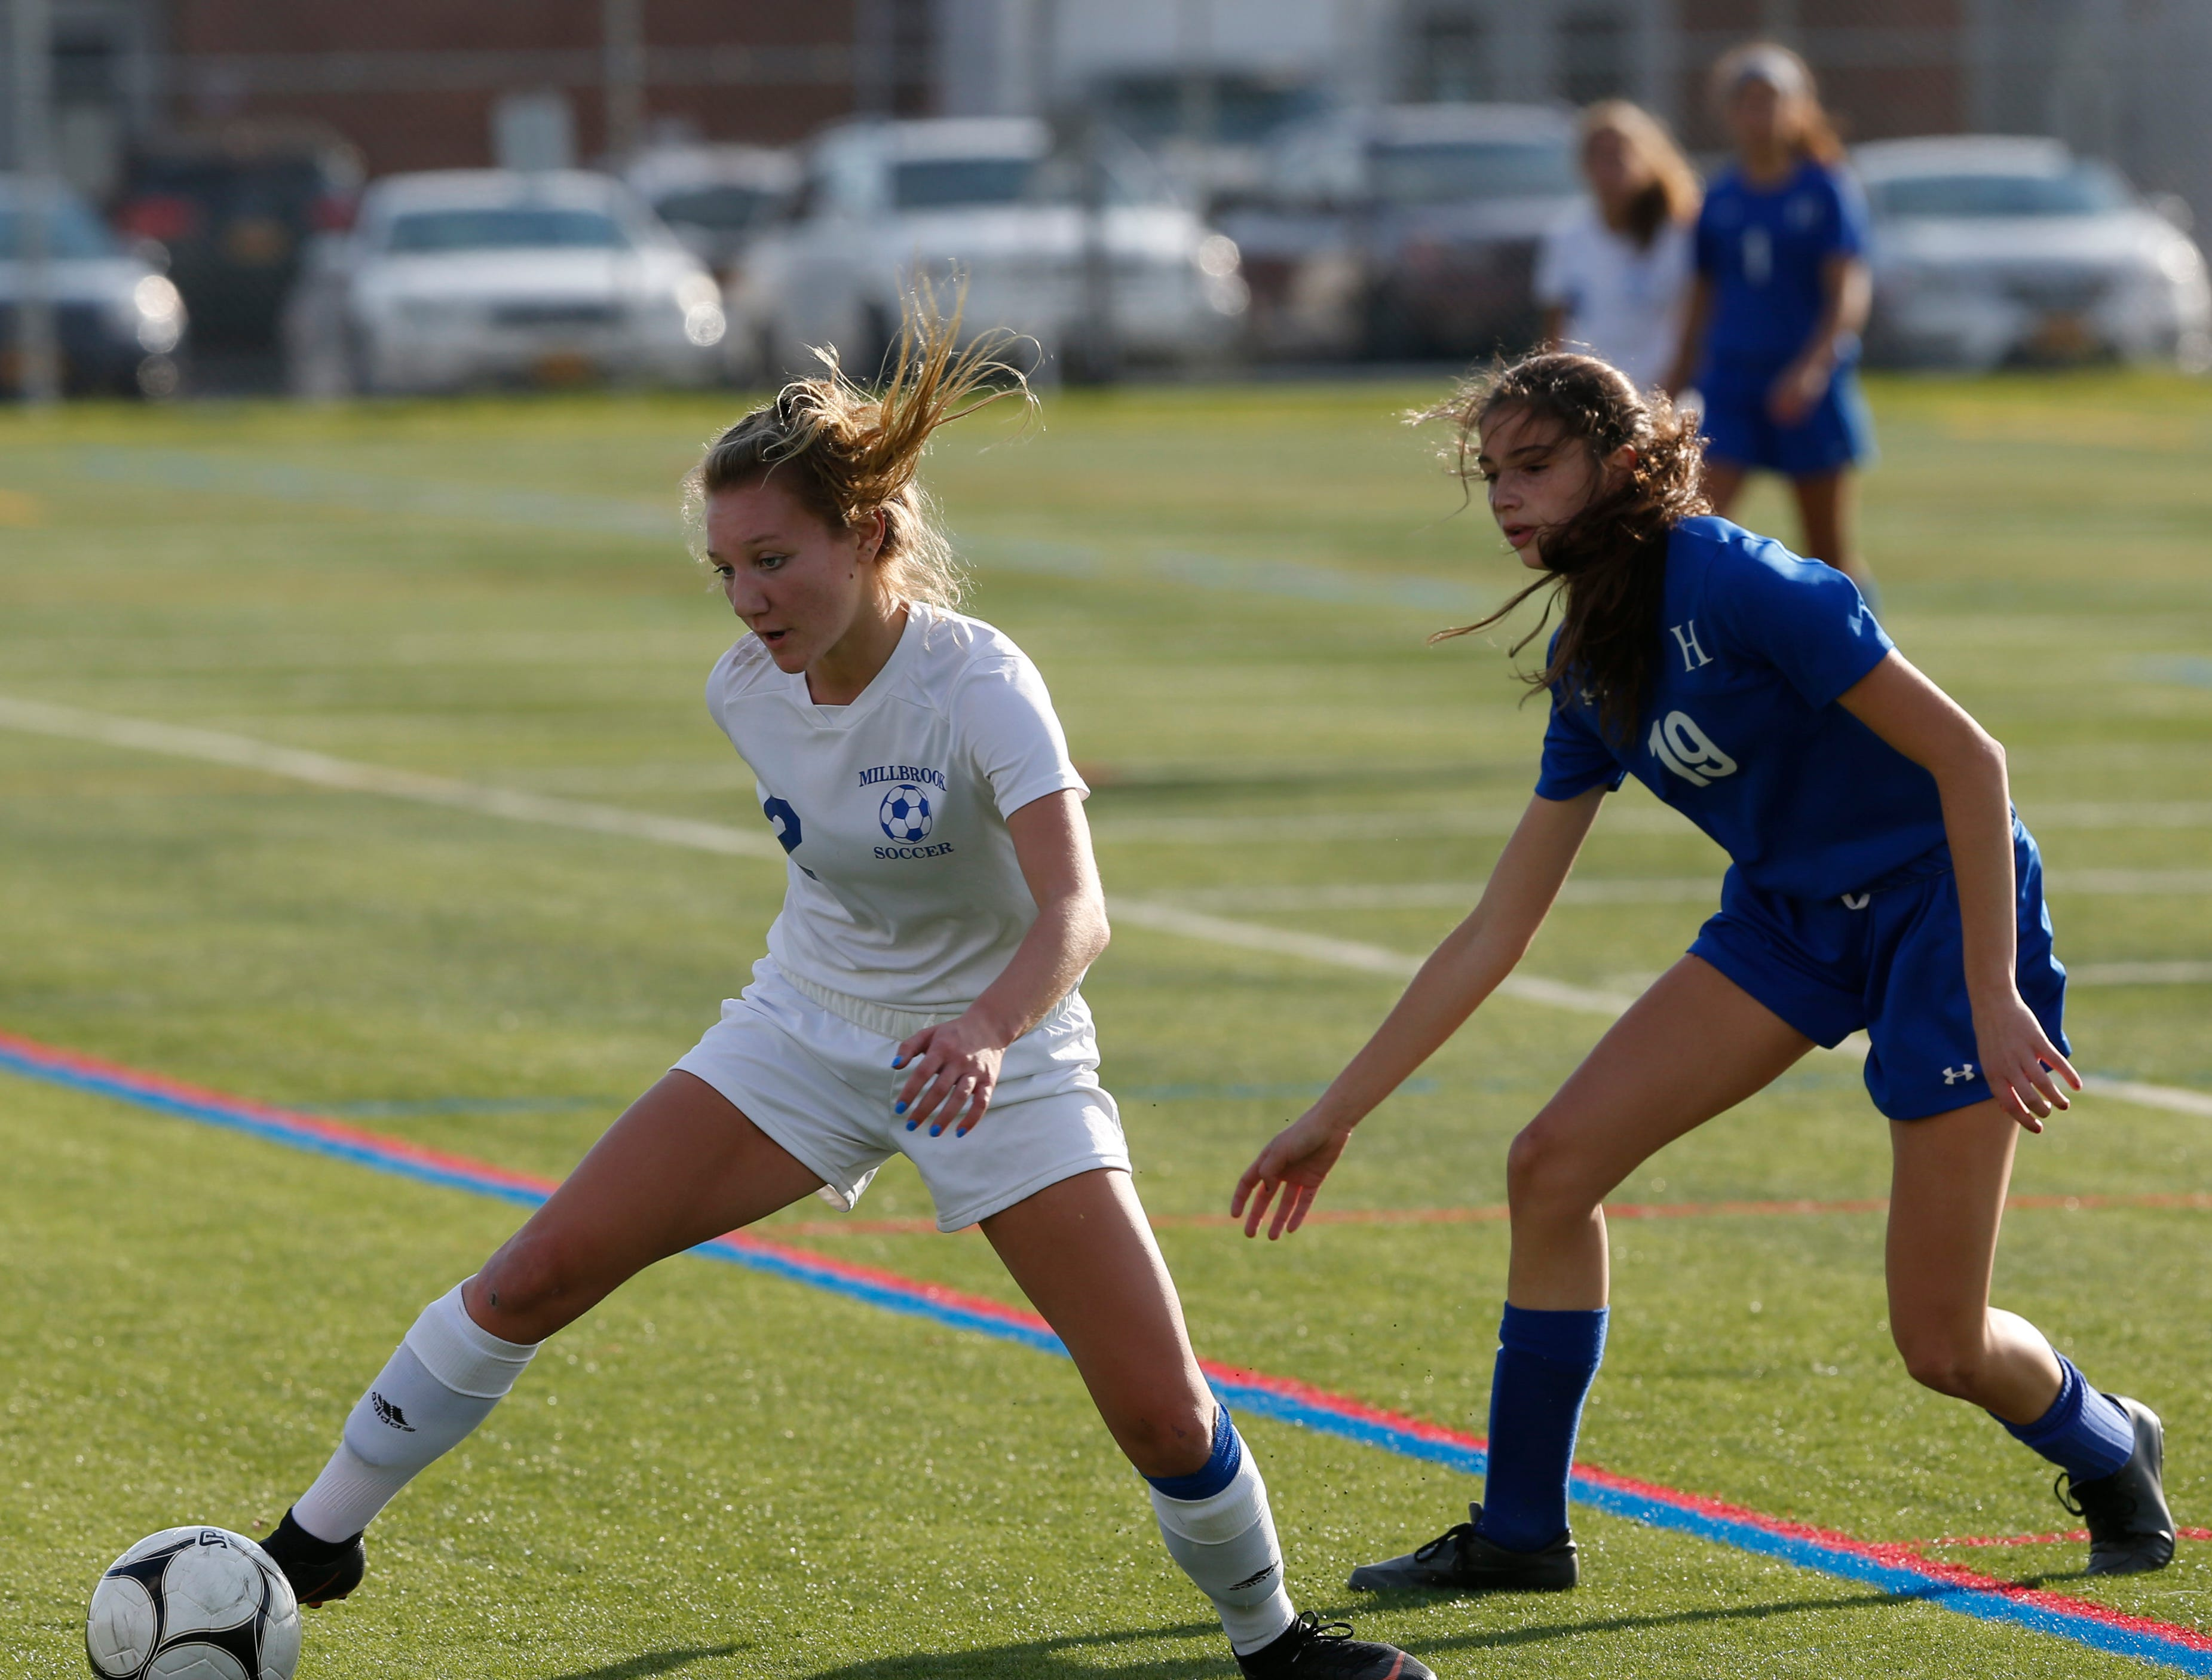 Action from Wednesday's Class C regional semifinal between Haldane and Millbrook in Freedom Plains on October 31, 2018.